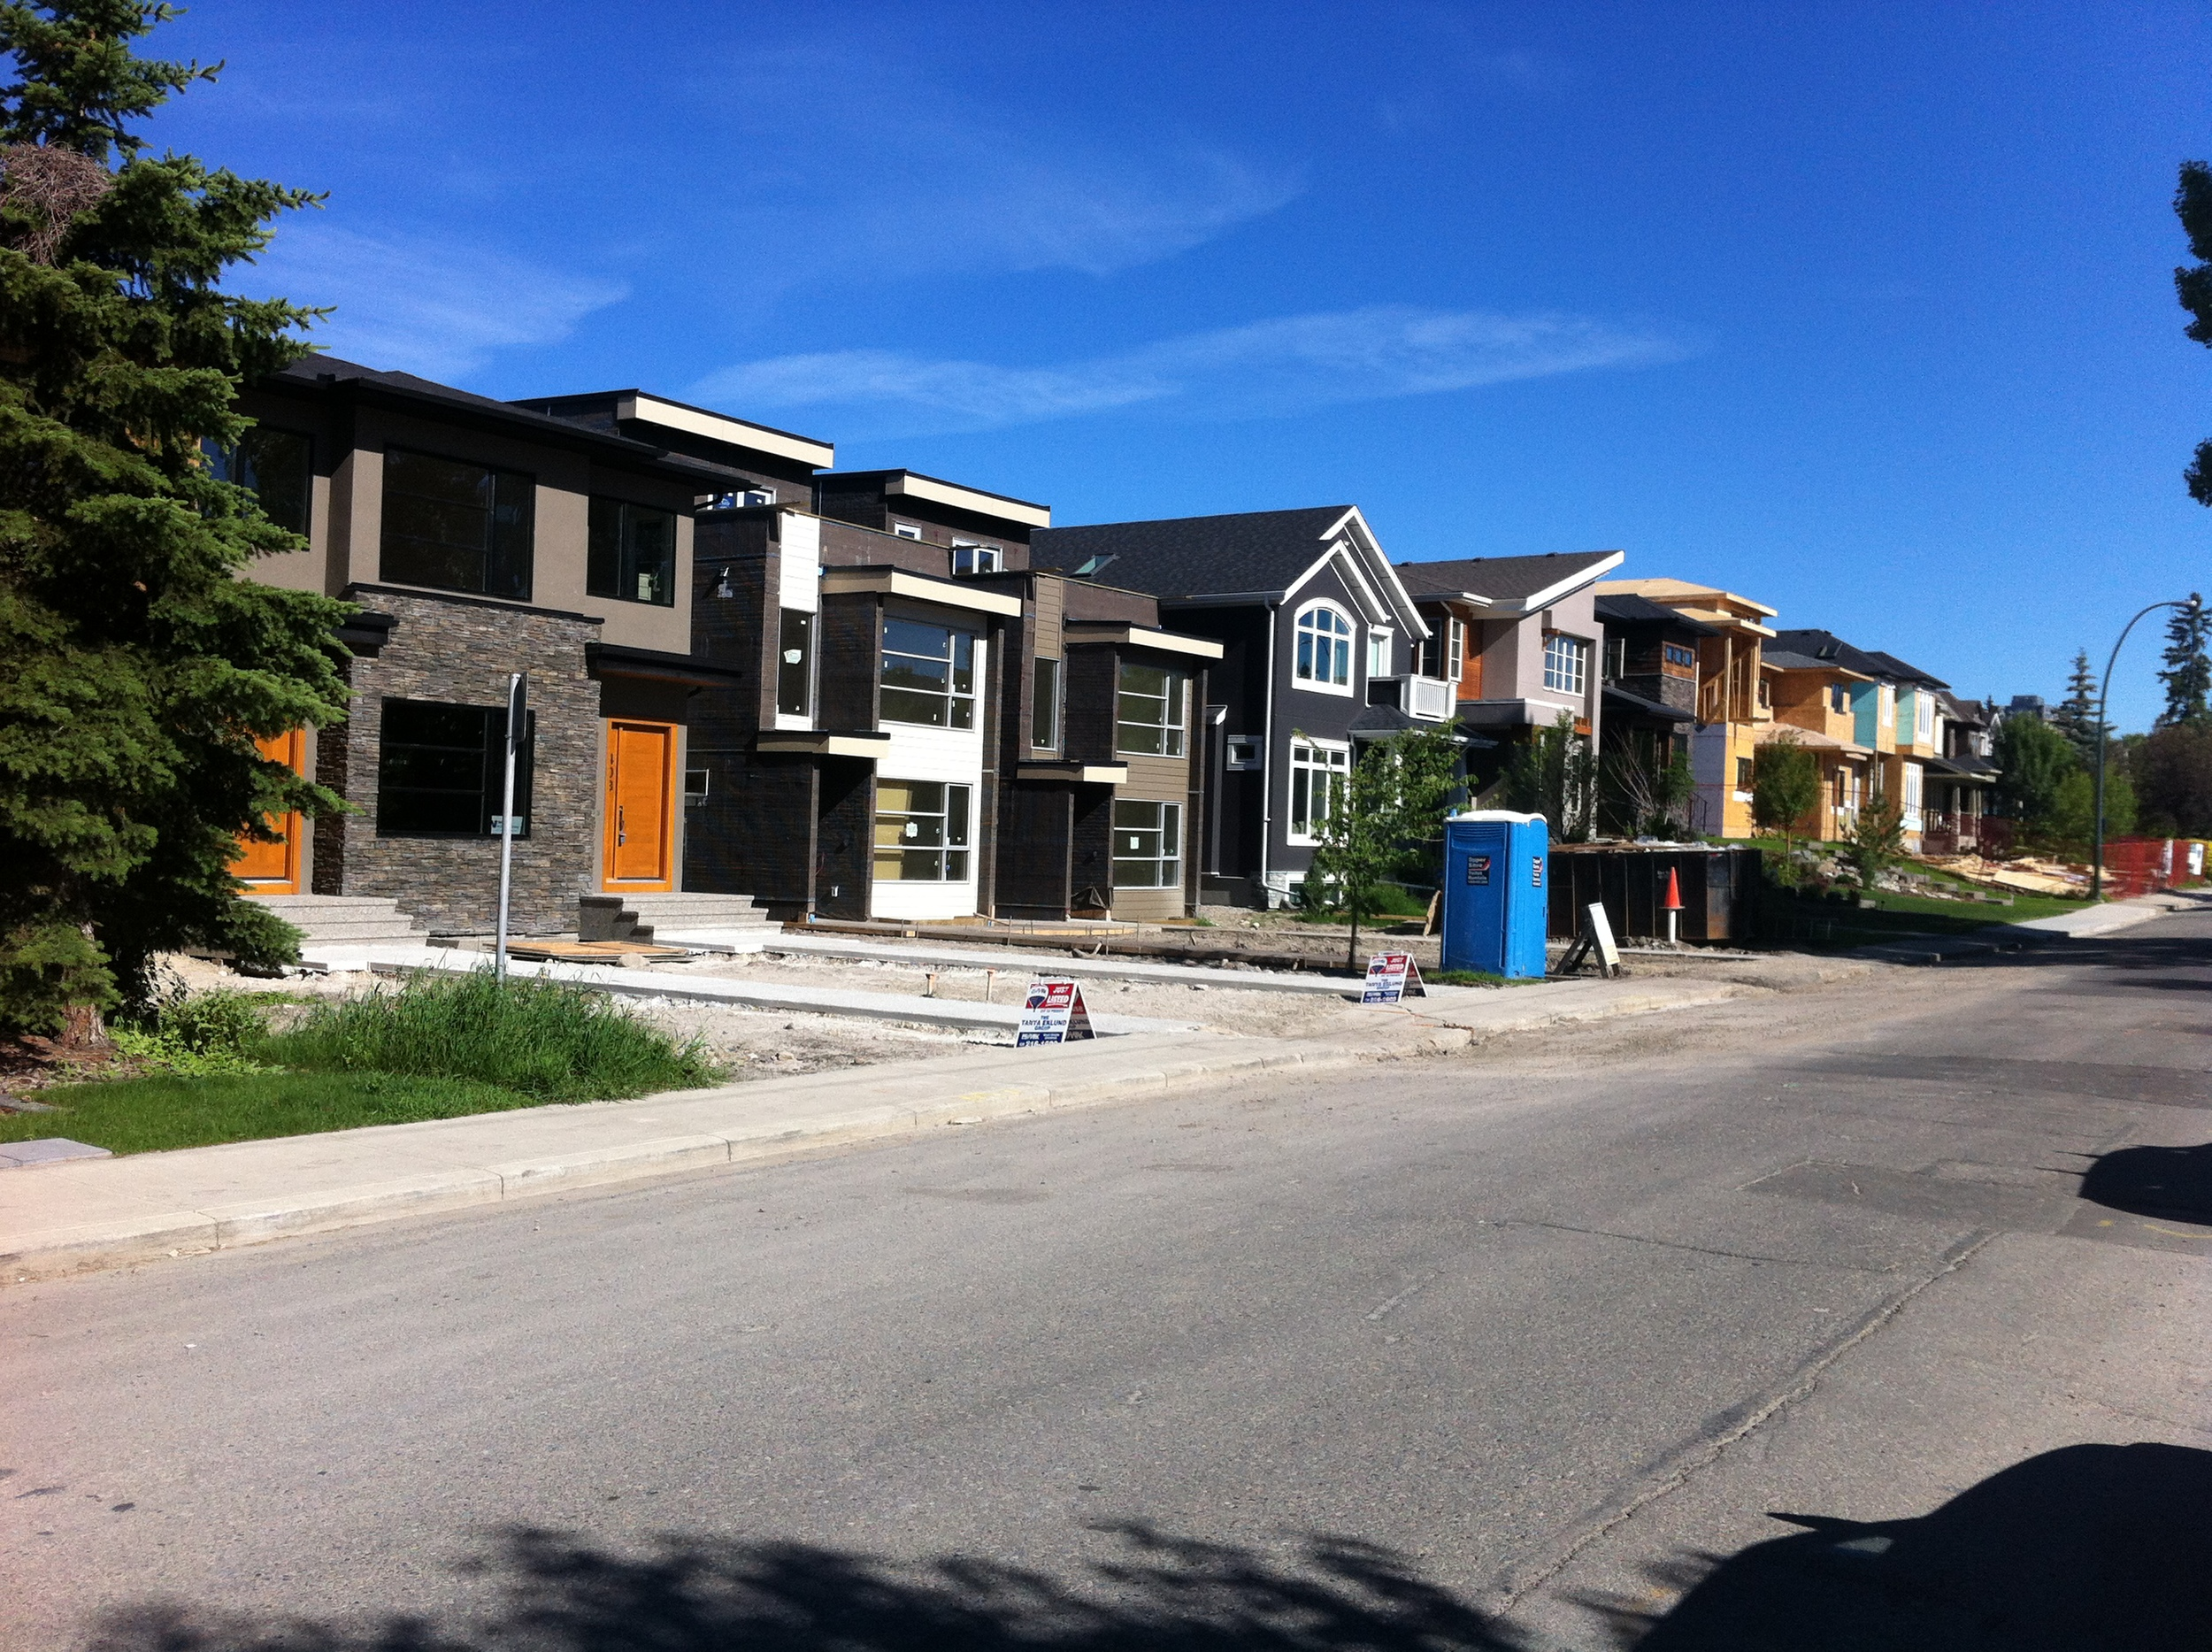 A parade of infill show homes in Hillhurst.